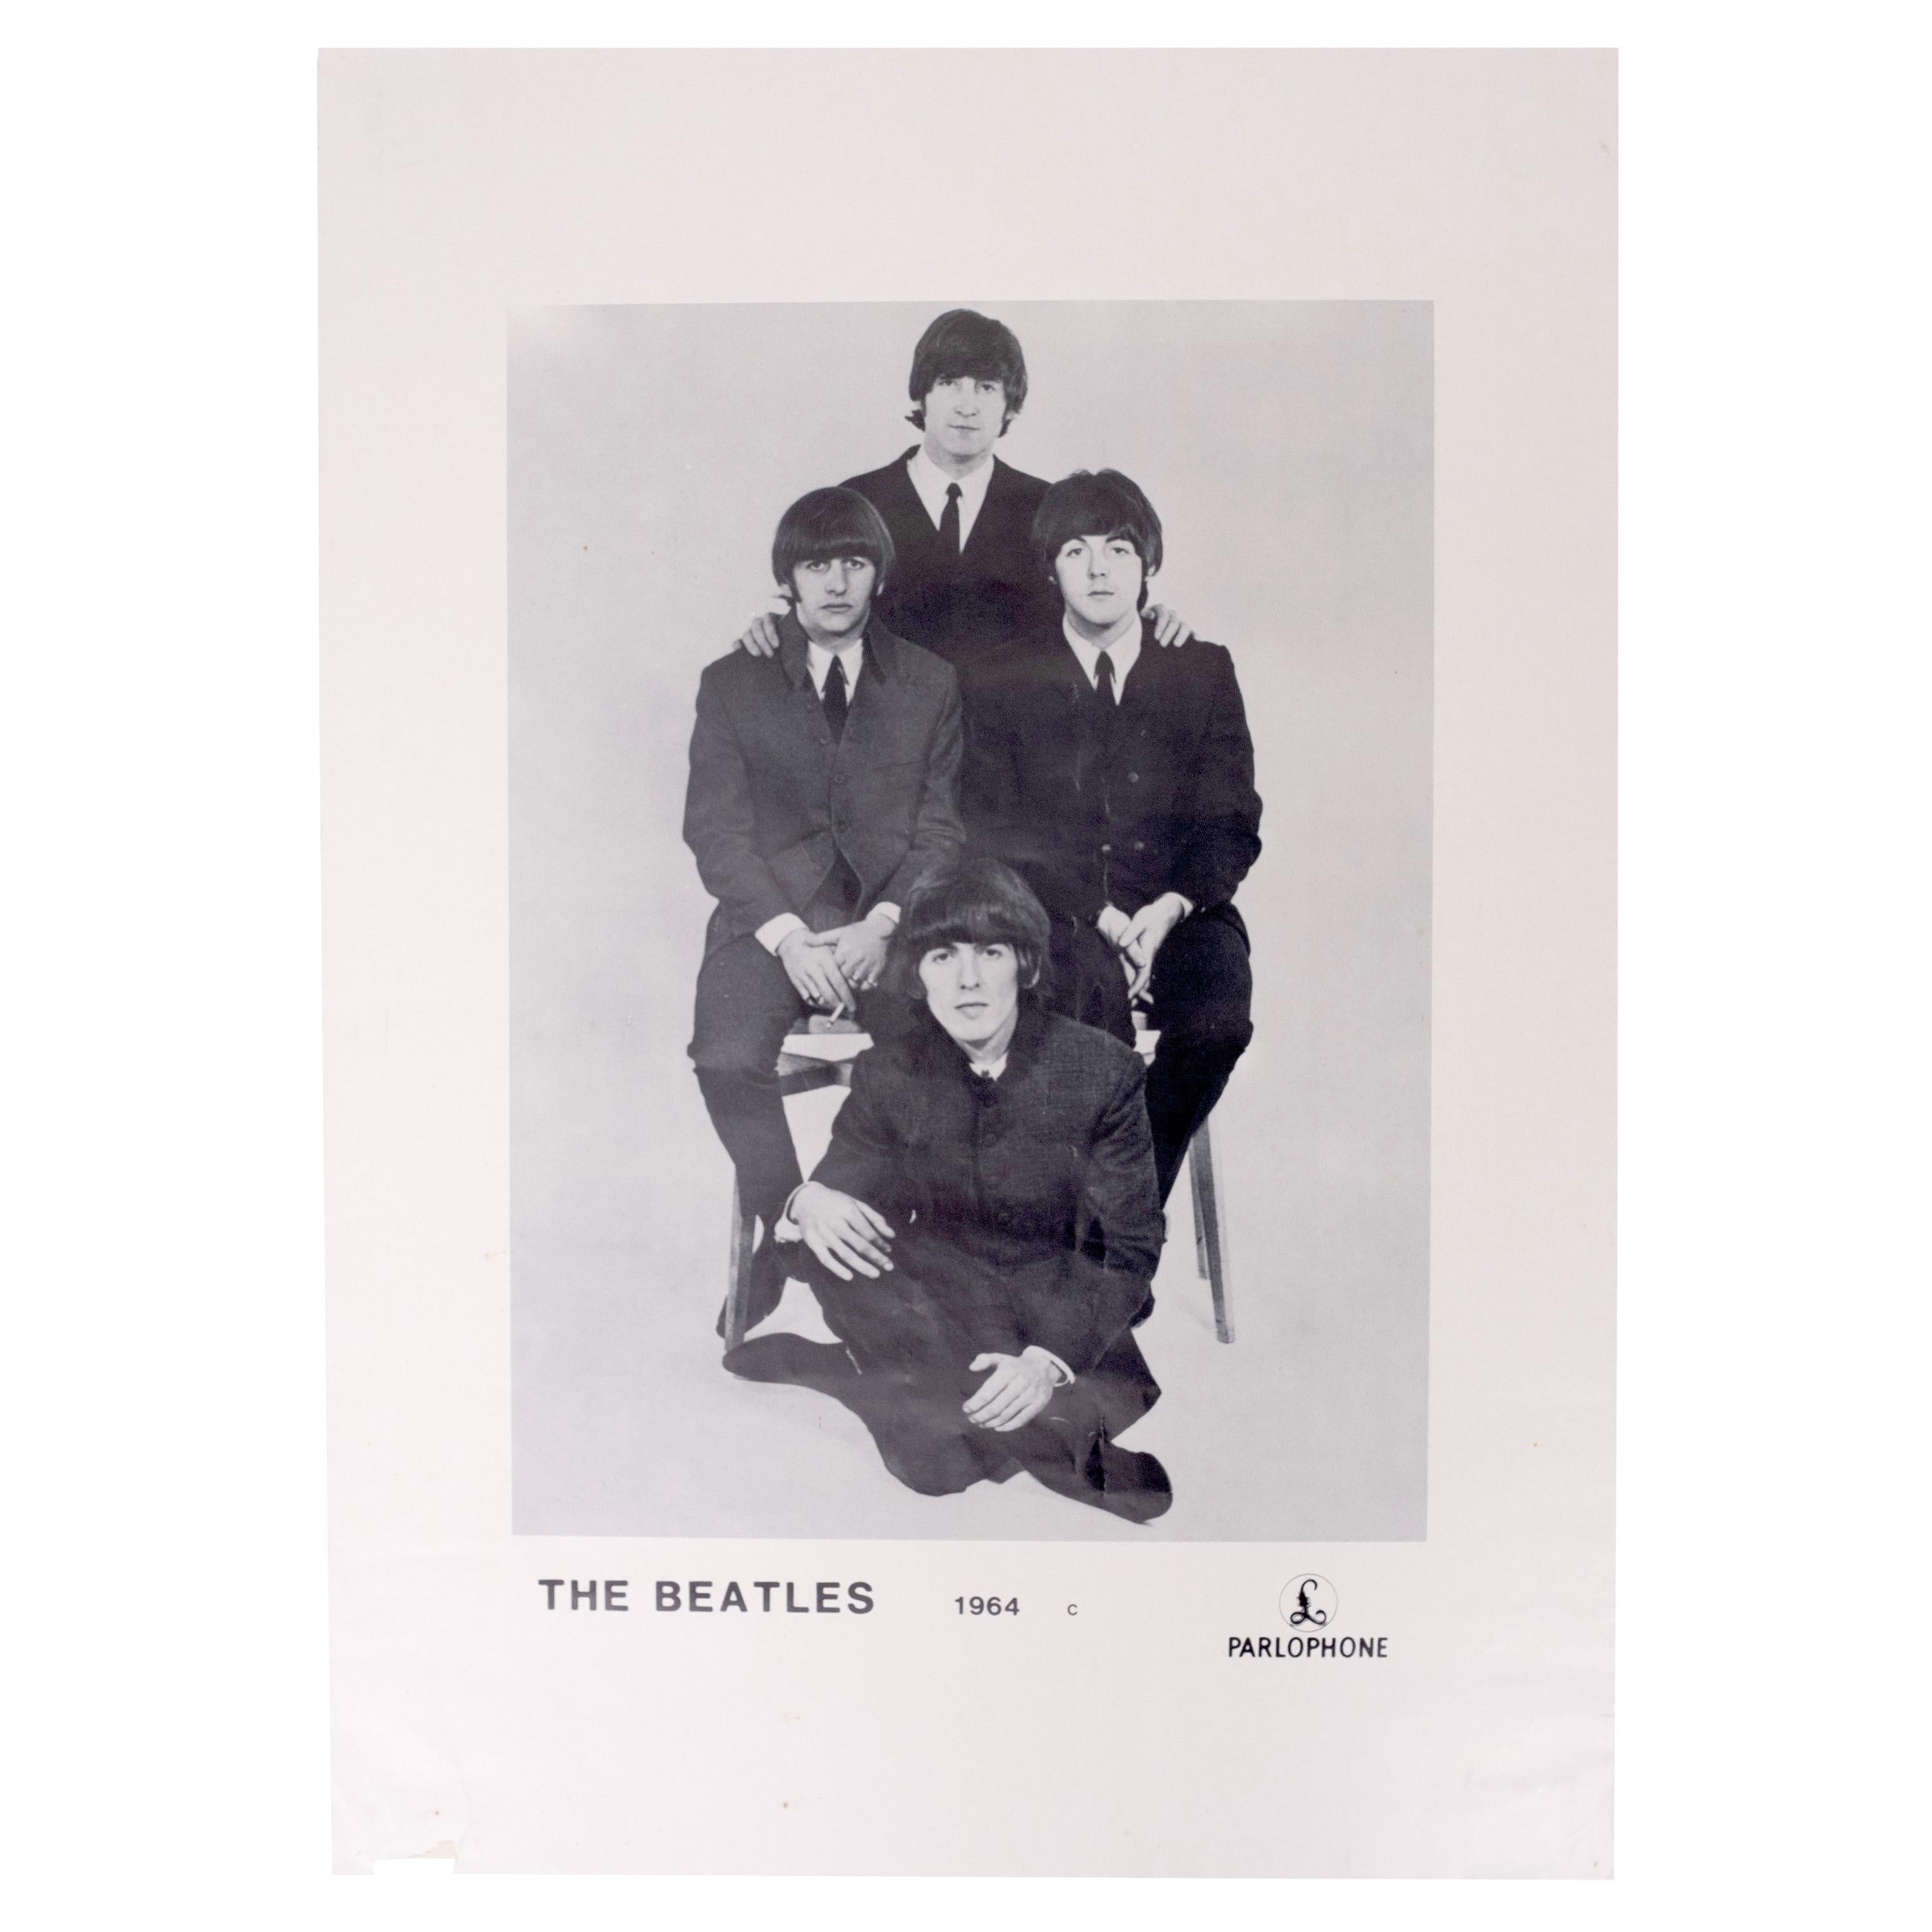 The Beatles Promotional Poster 1964